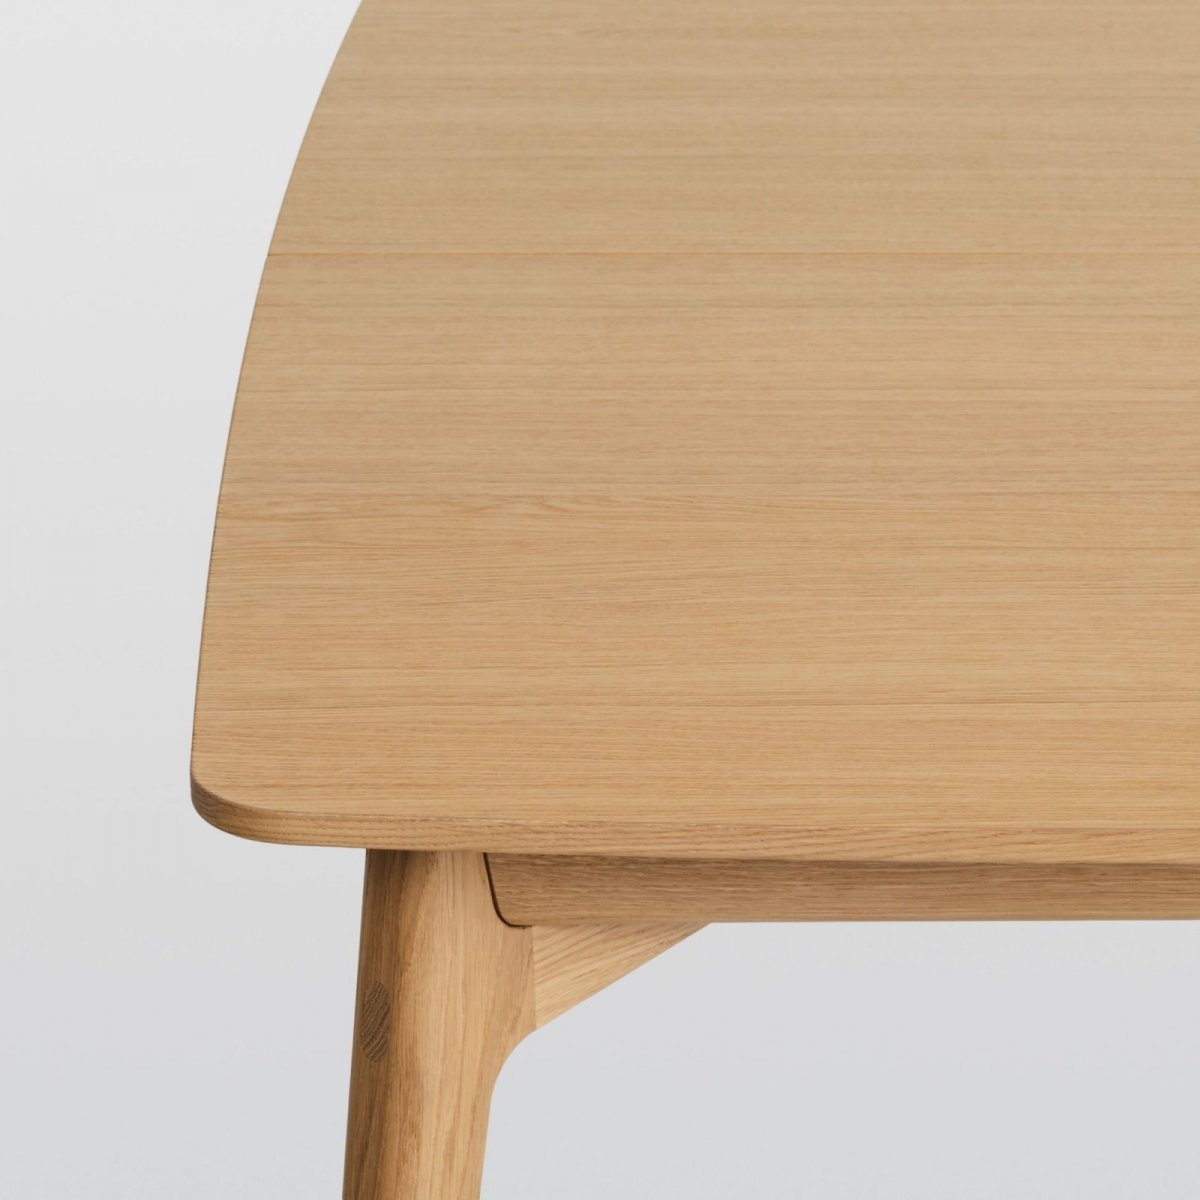 Dulwich Table, oak, detail.